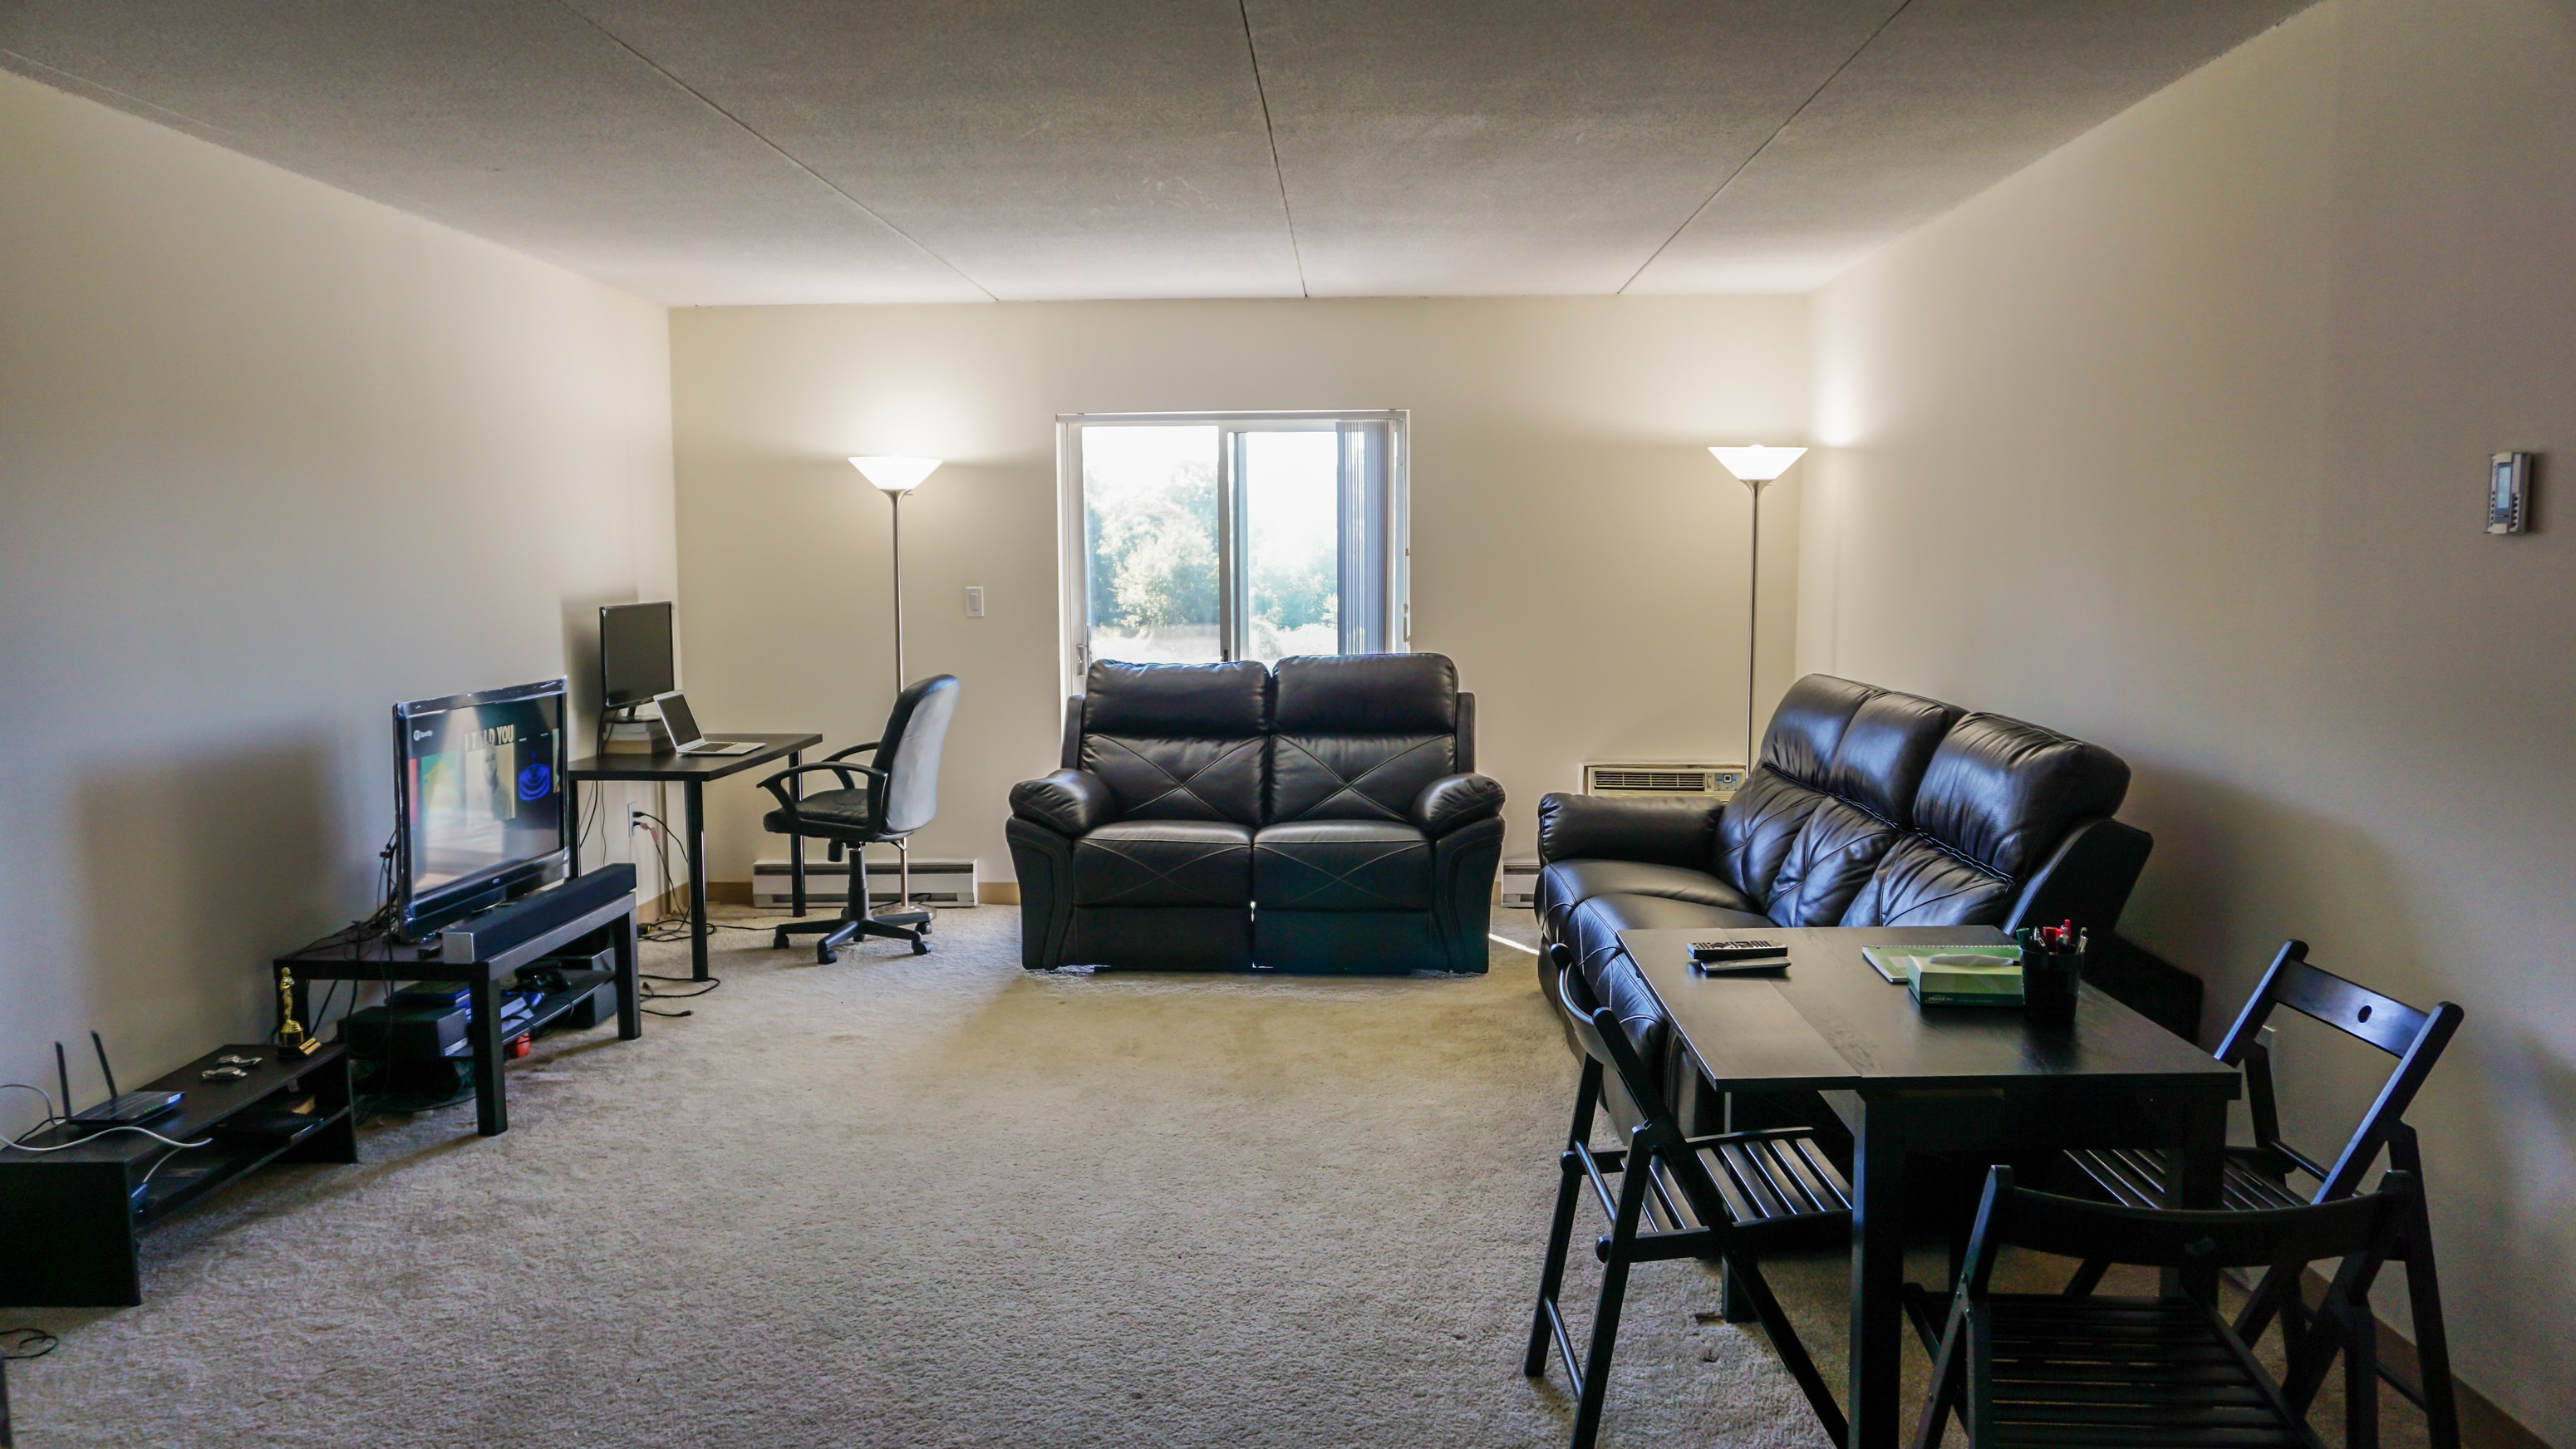 House For Rent In Boston Metro Area Apartments Flats Commercial Space Individual House For